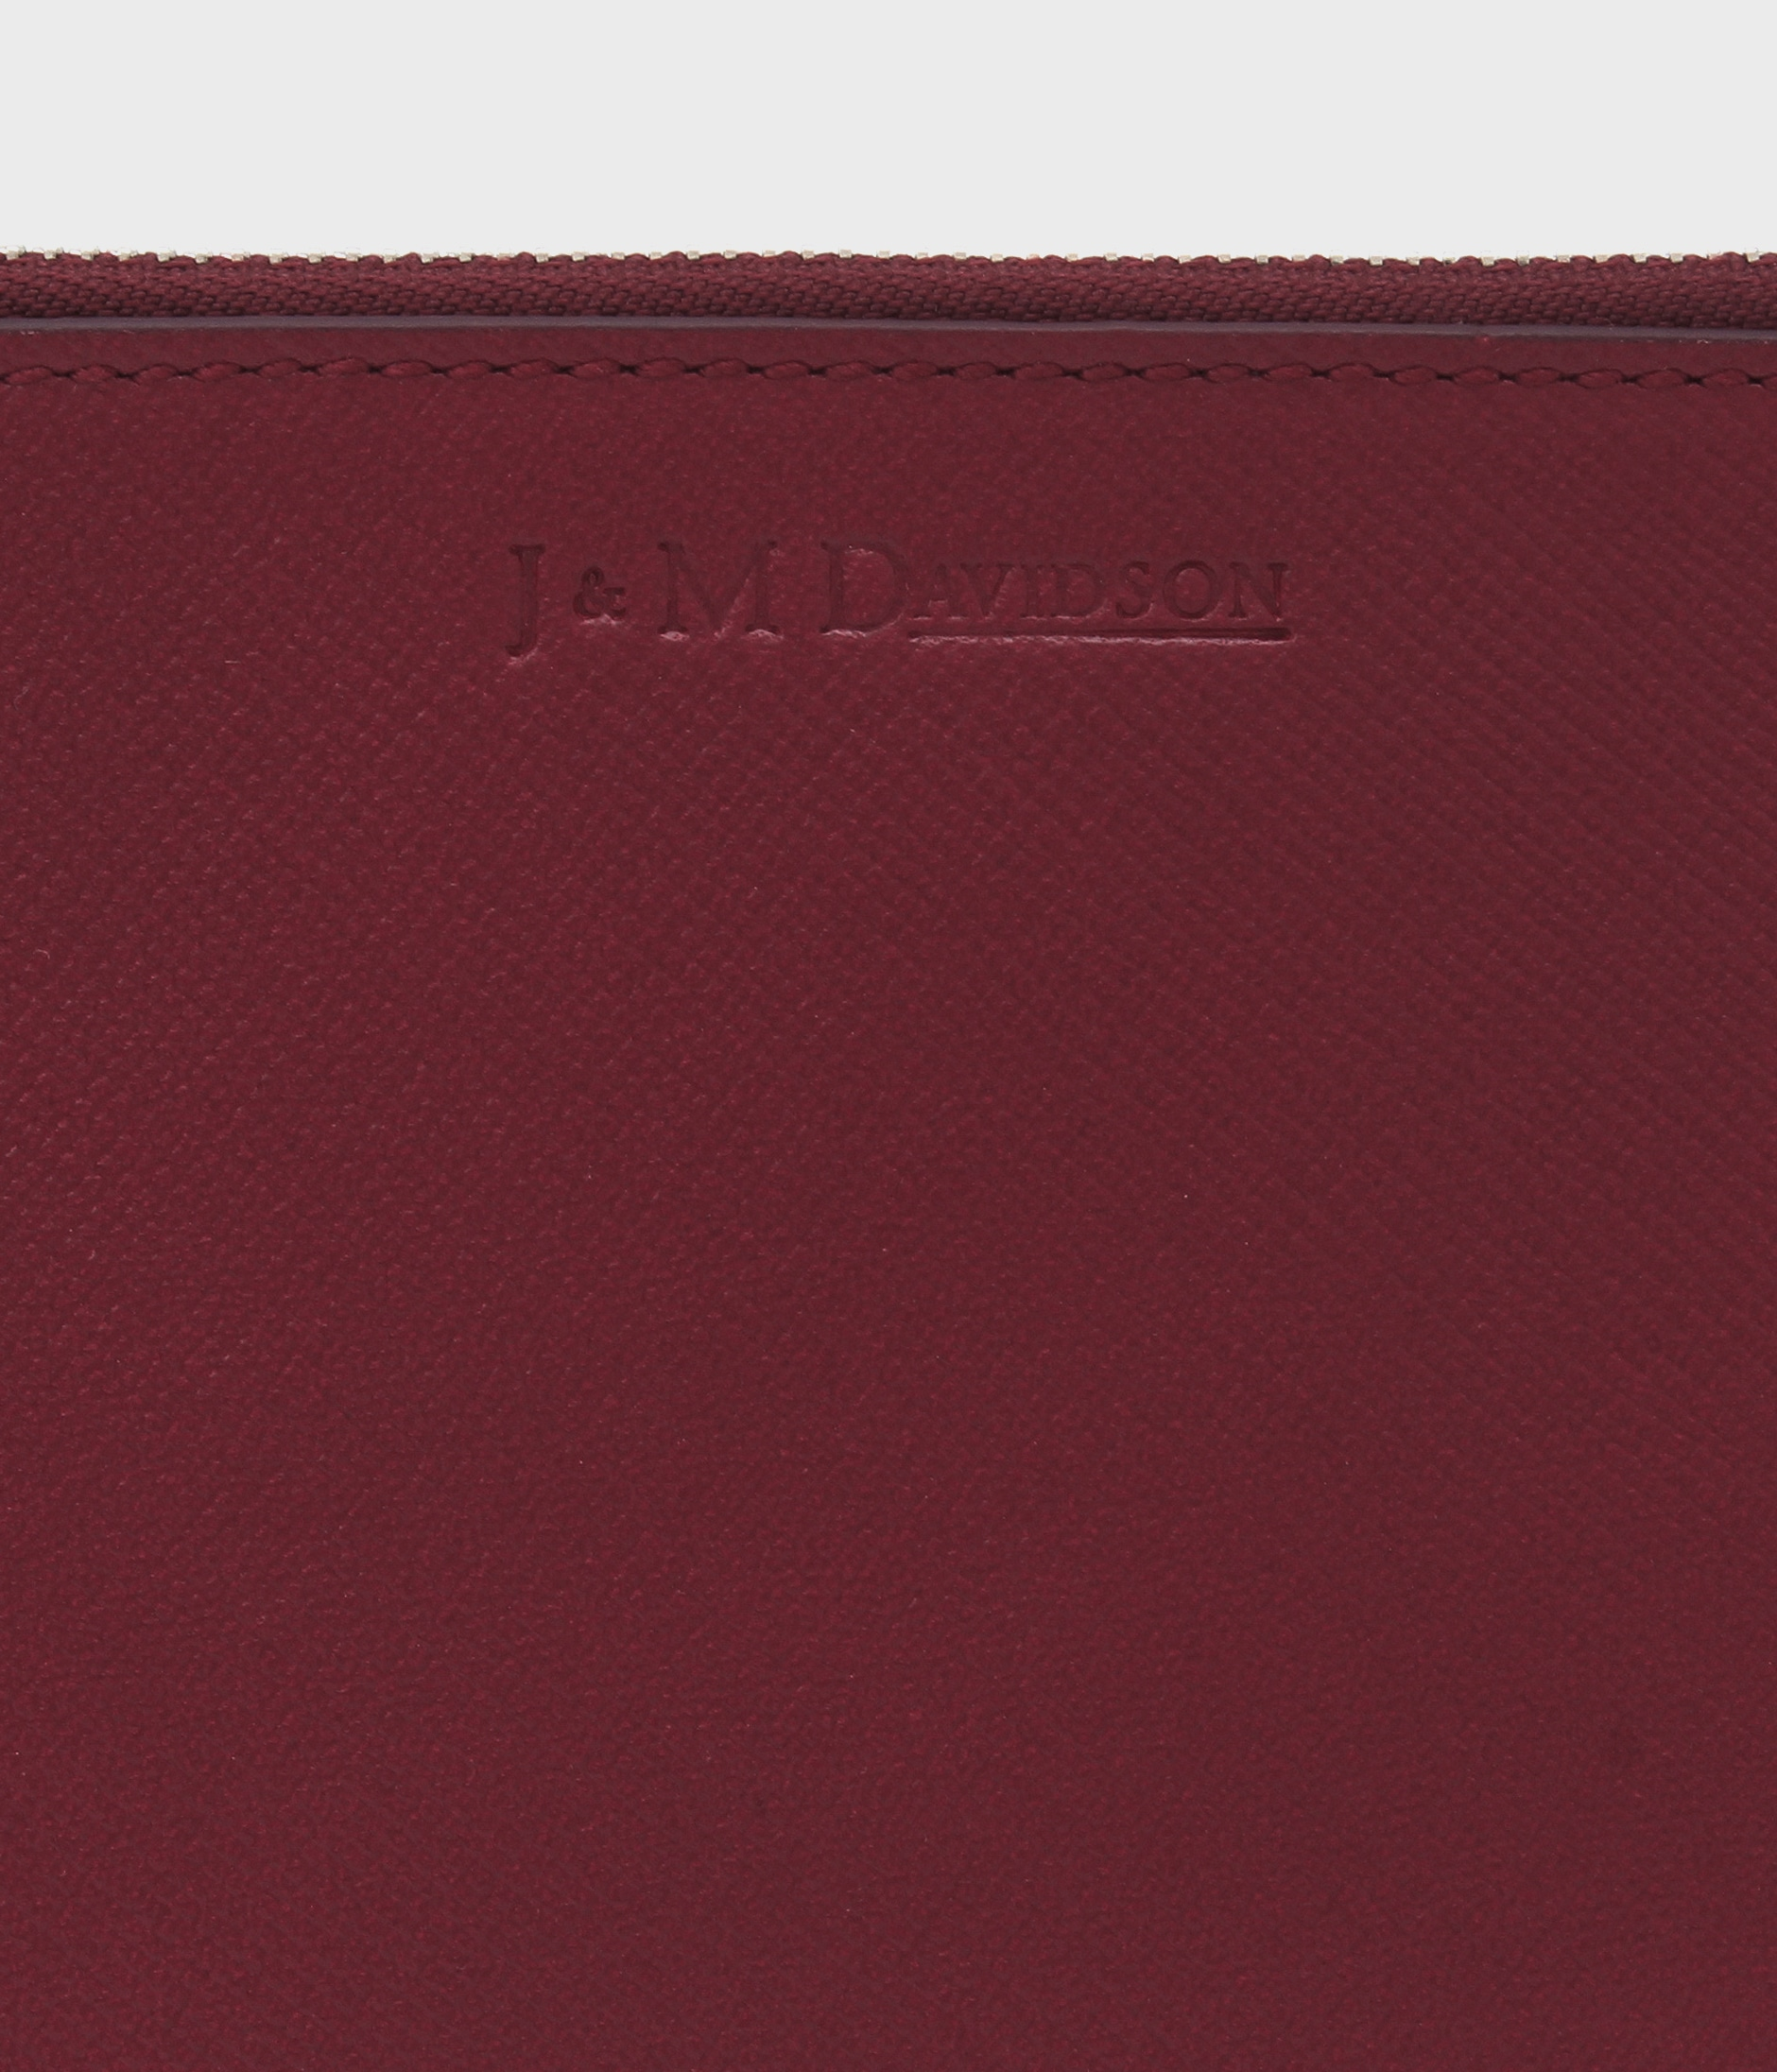 ZIP POUCH CARD HOLDER 詳細画像 BURGUNDY 4